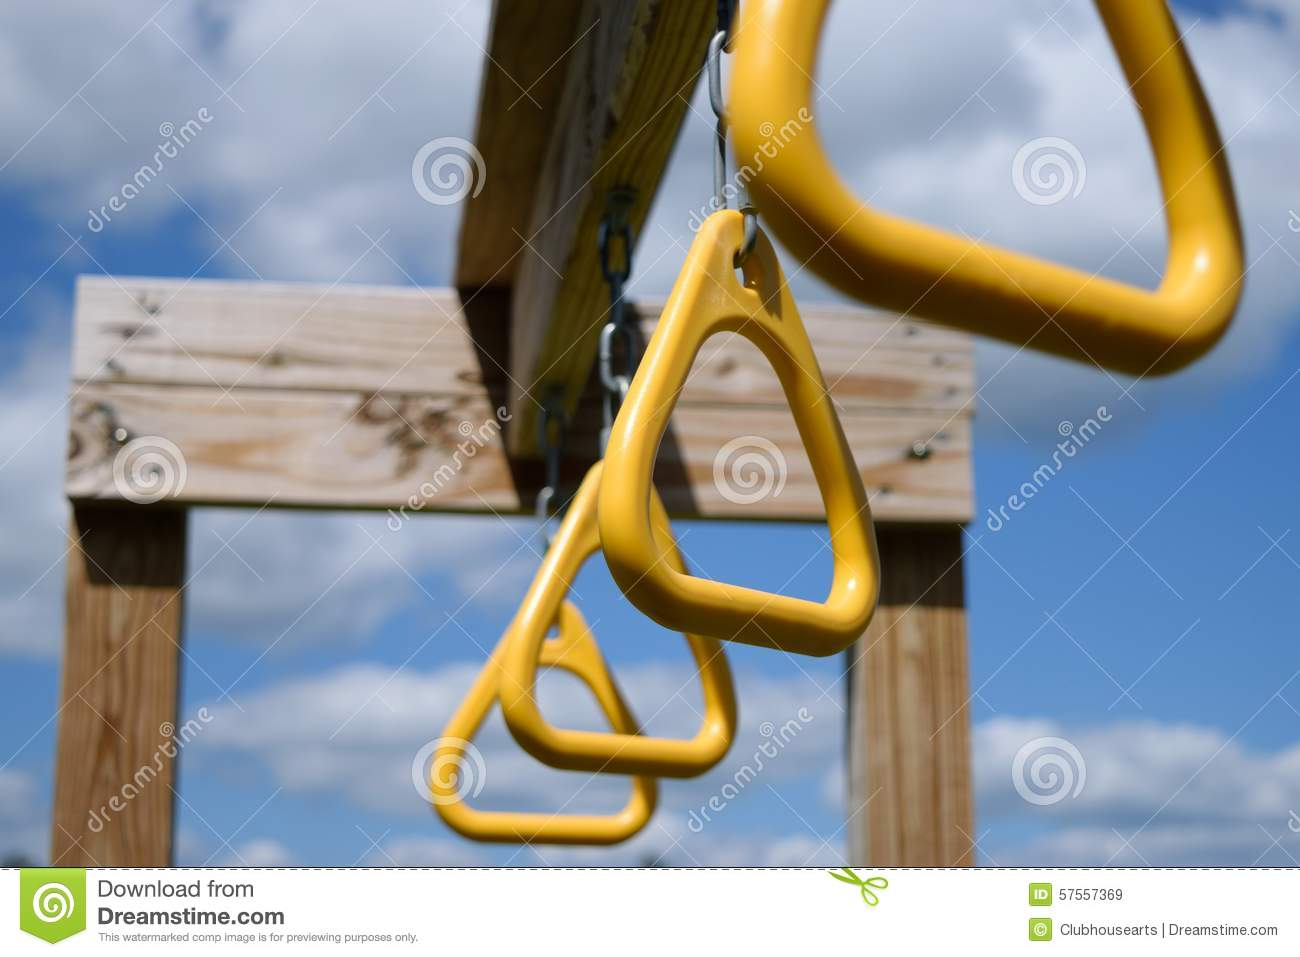 View from below of monkey bar rings hanging from wooden beam stock